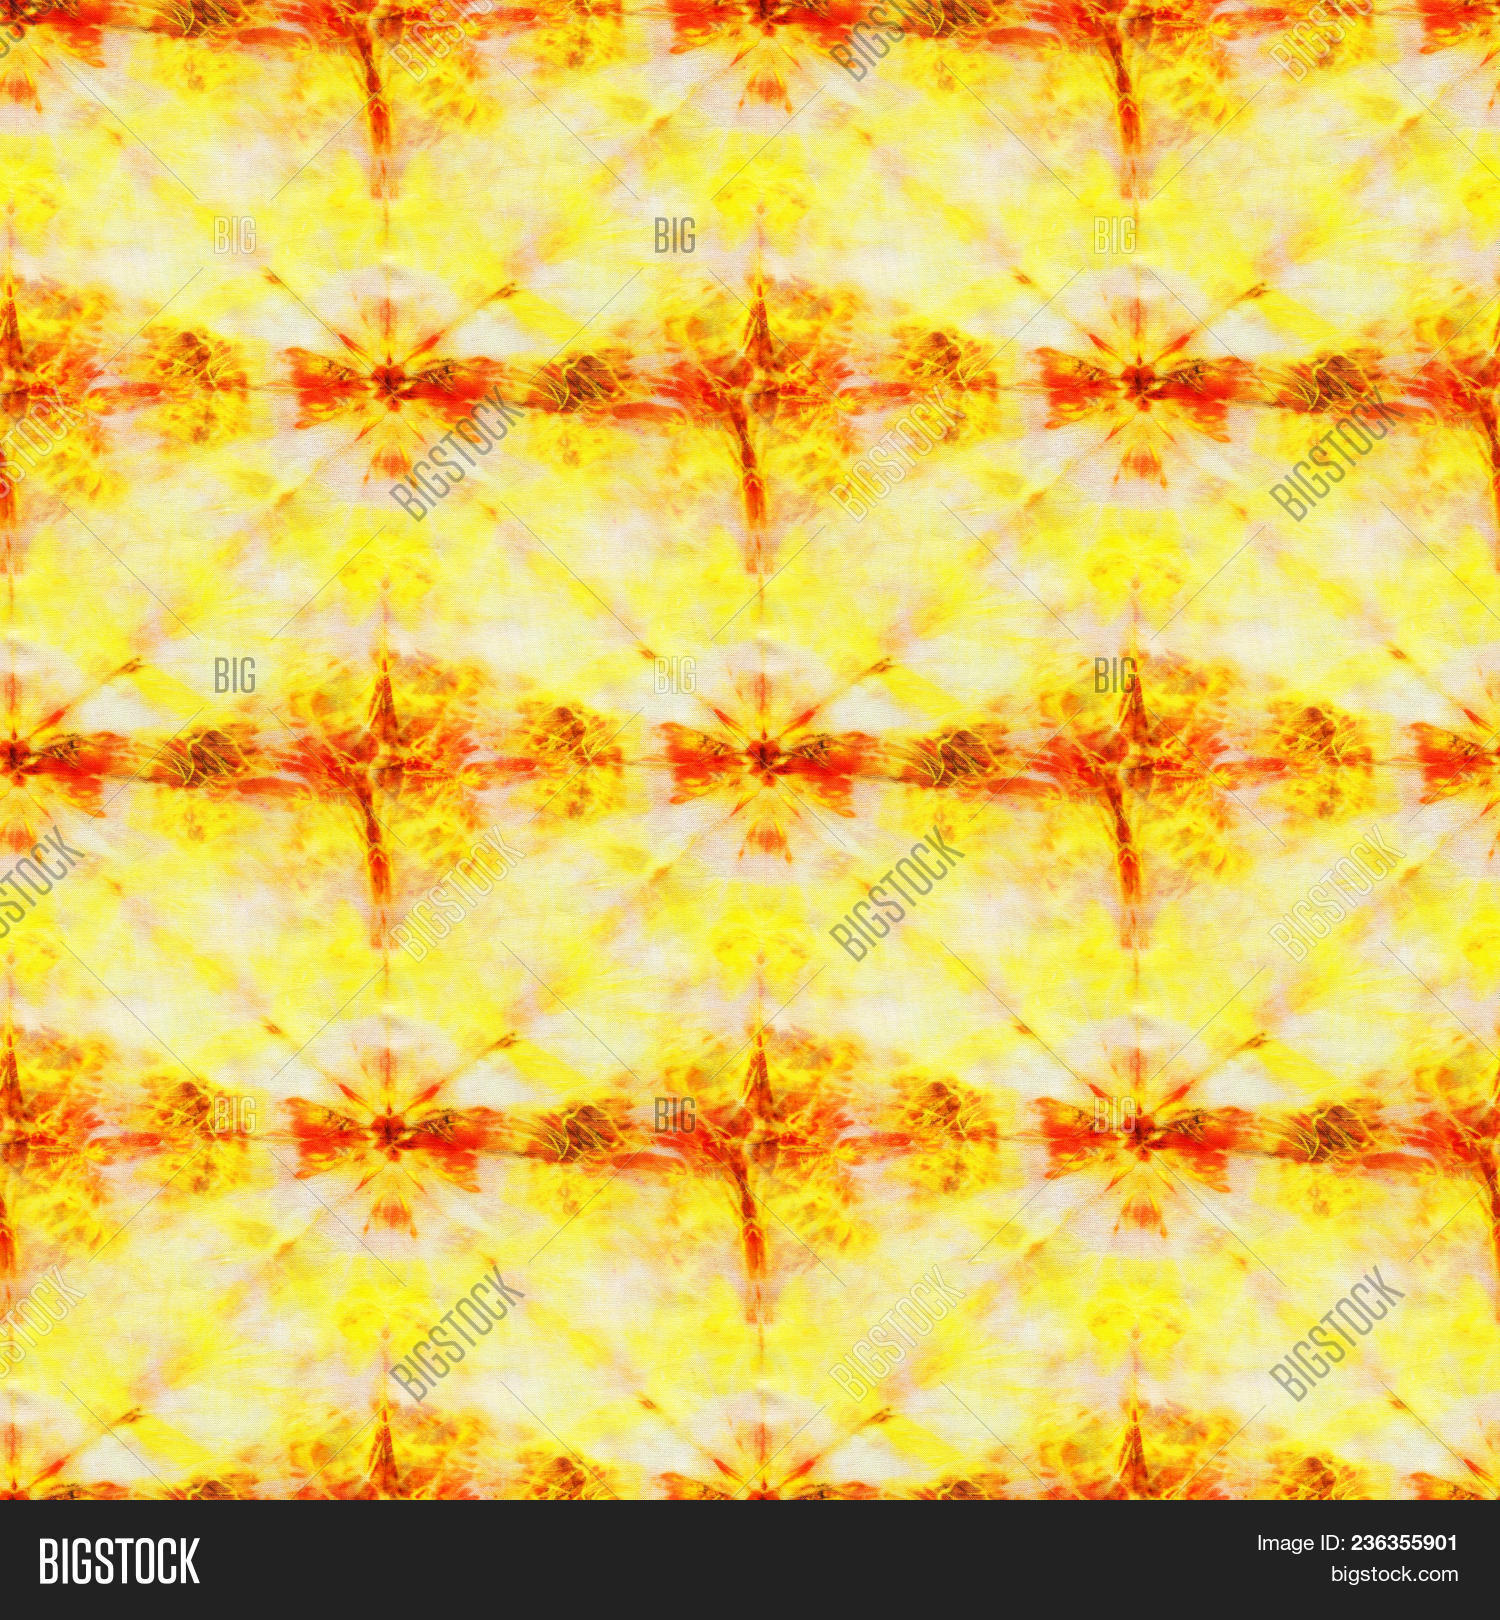 47bc6758b374 Seamless tie-dye pattern of yellow and red color on white silk. Hand  painting fabrics - nodular batik. Shibori dyeing.